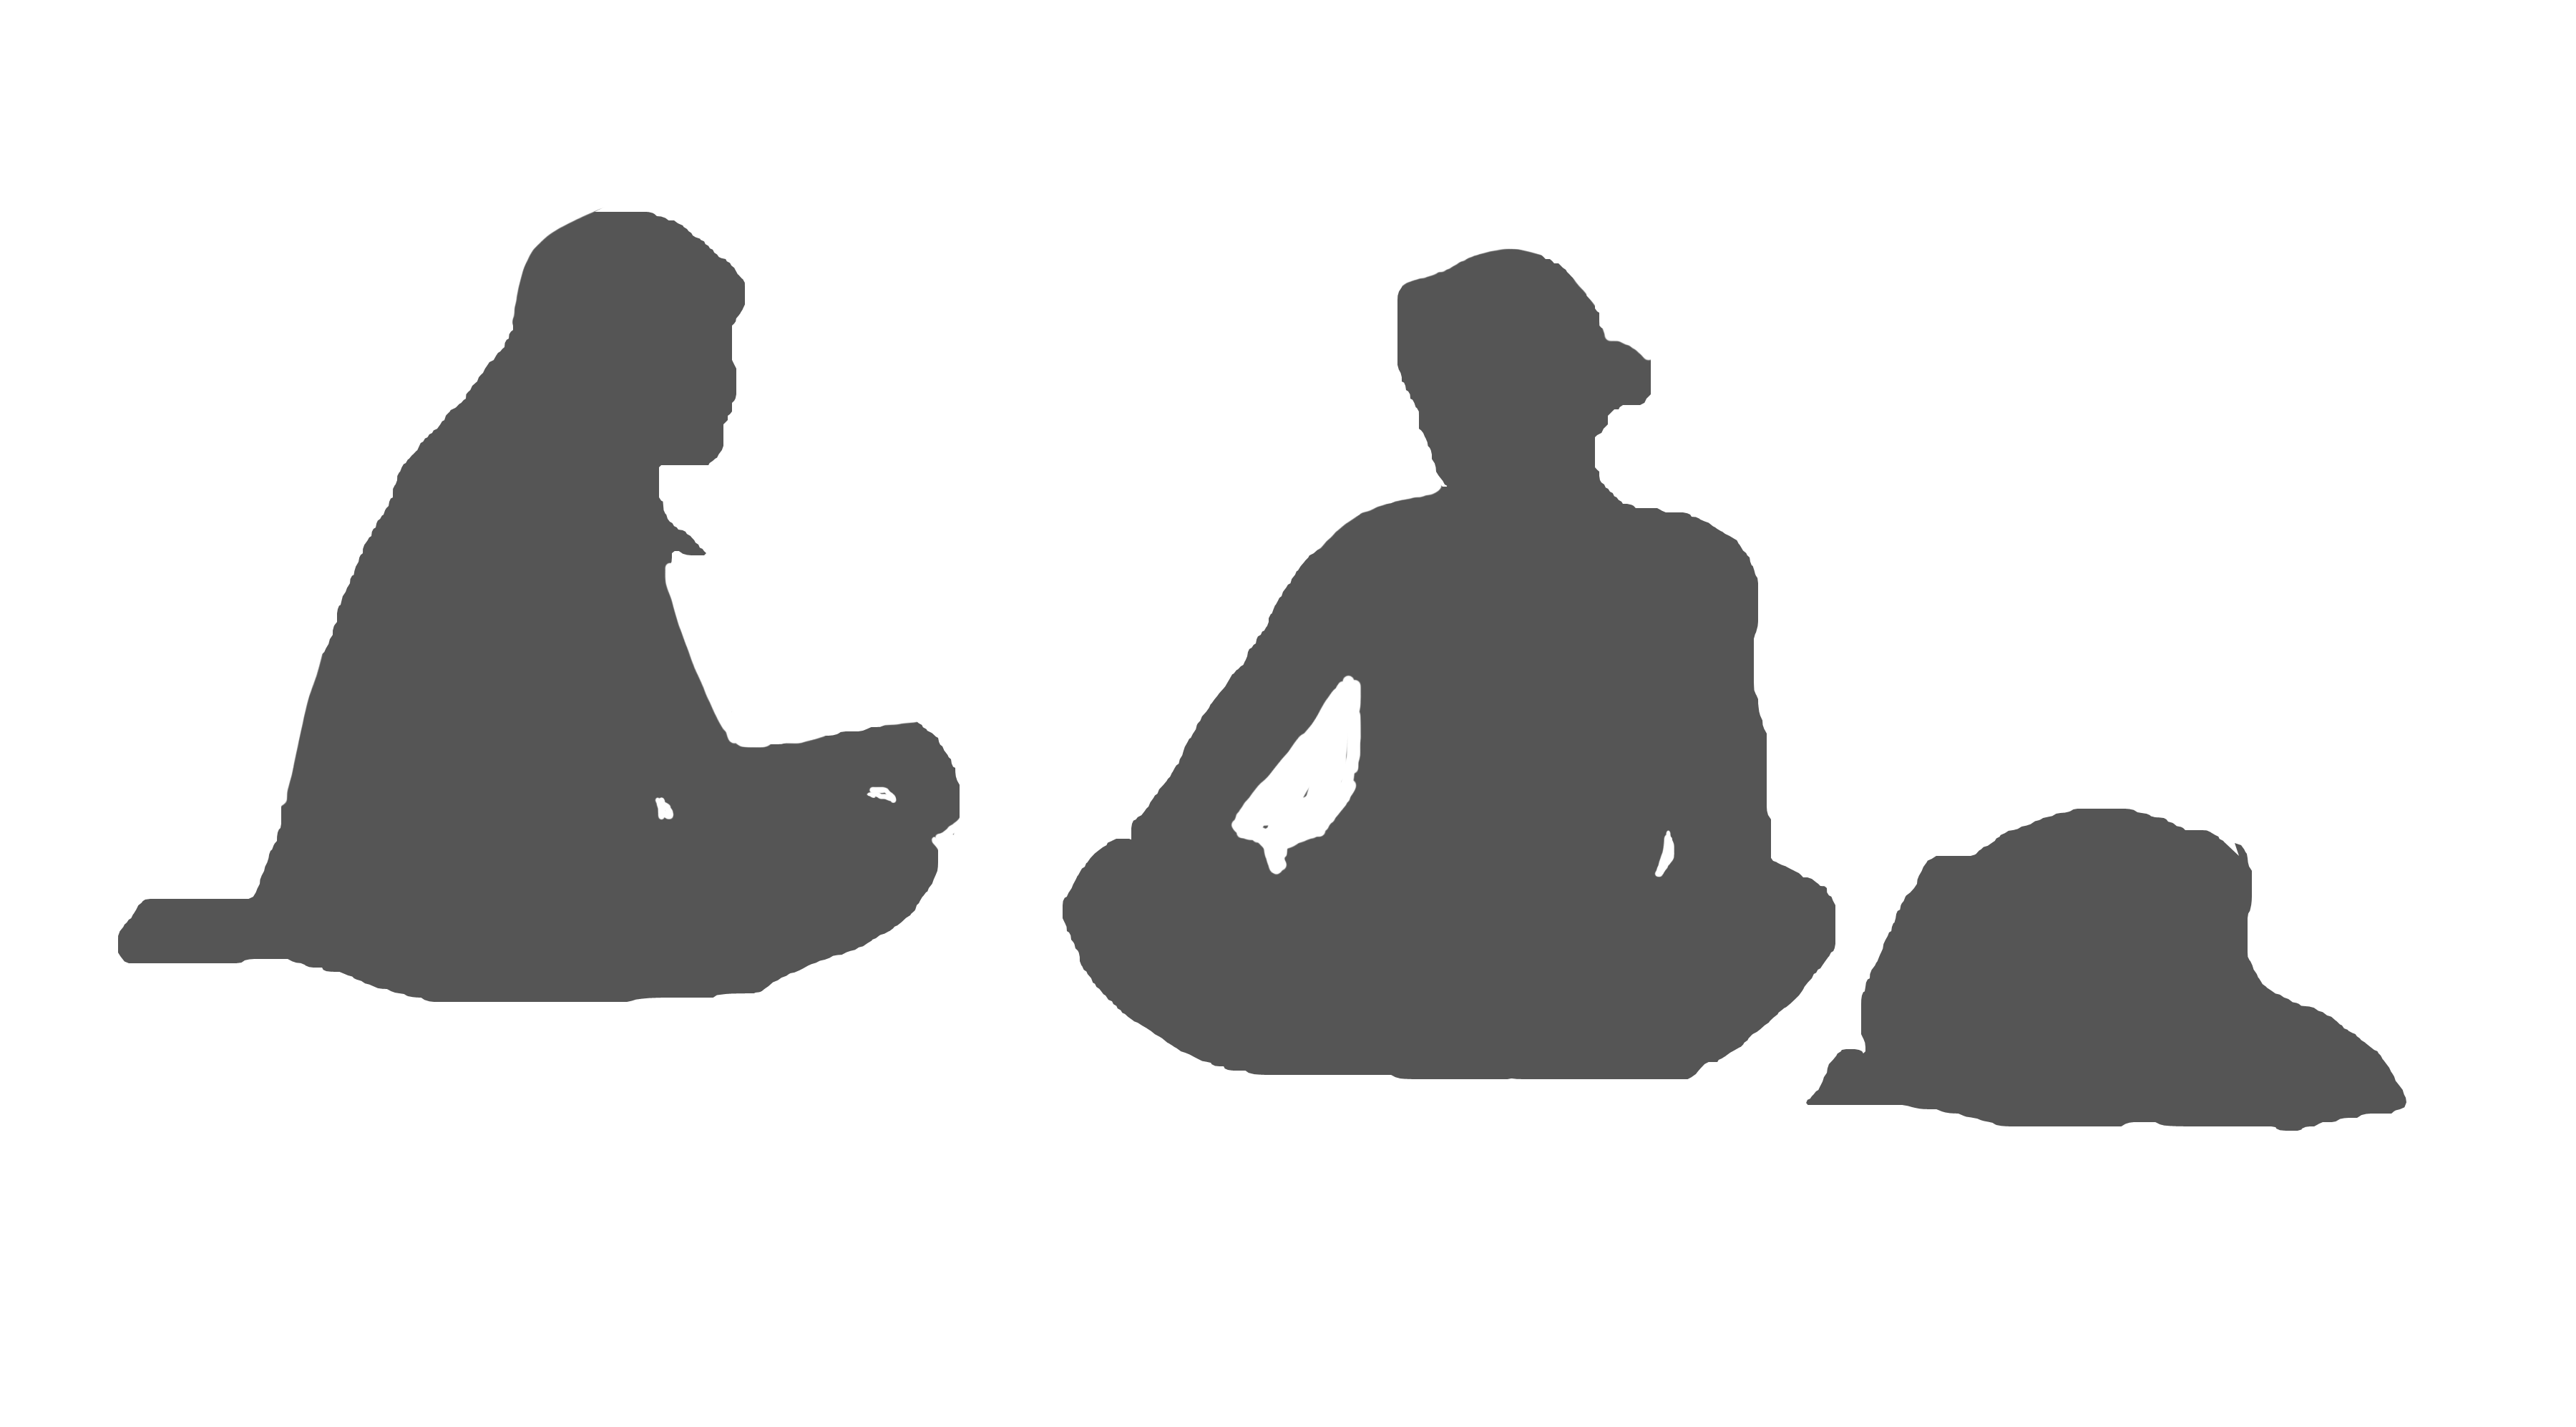 People clipart images for photoshop banner transparent library Sitting Silhouette White people - Photoshop png download - 3600*1994 ... banner transparent library